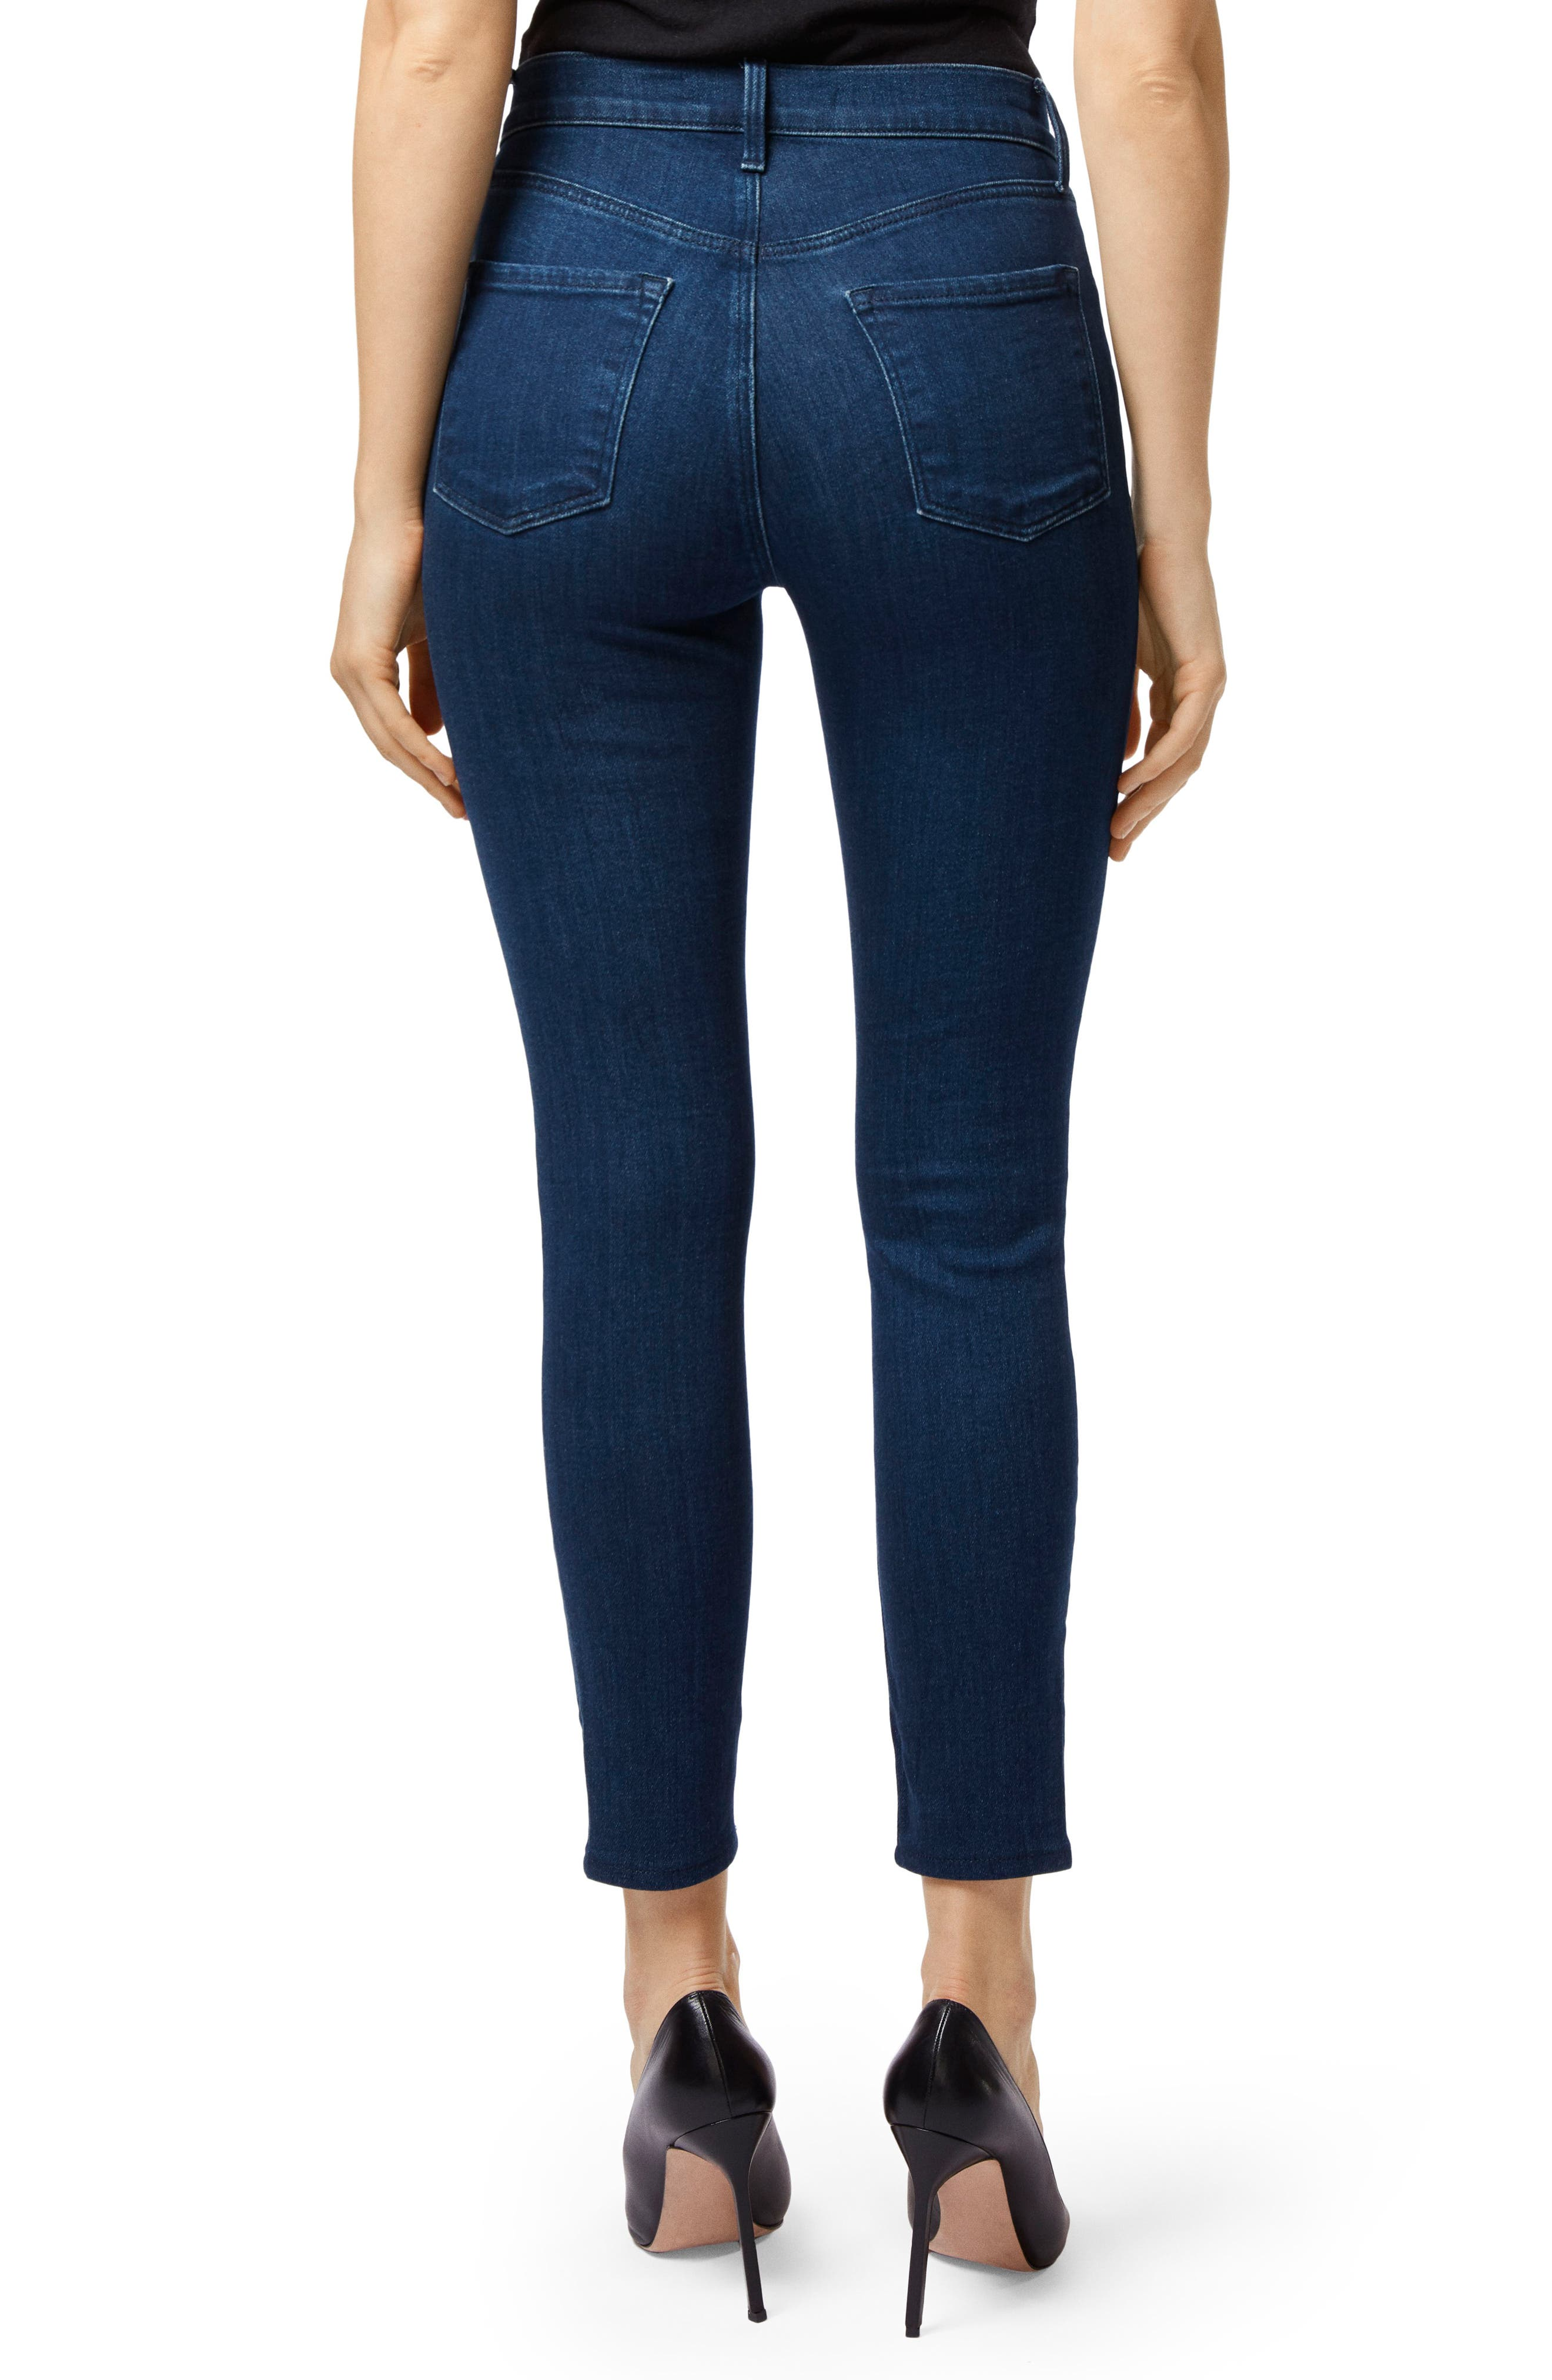 Alana Exposed Zip High Waist Ankle Skinny Jeans,                             Alternate thumbnail 2, color,                             439